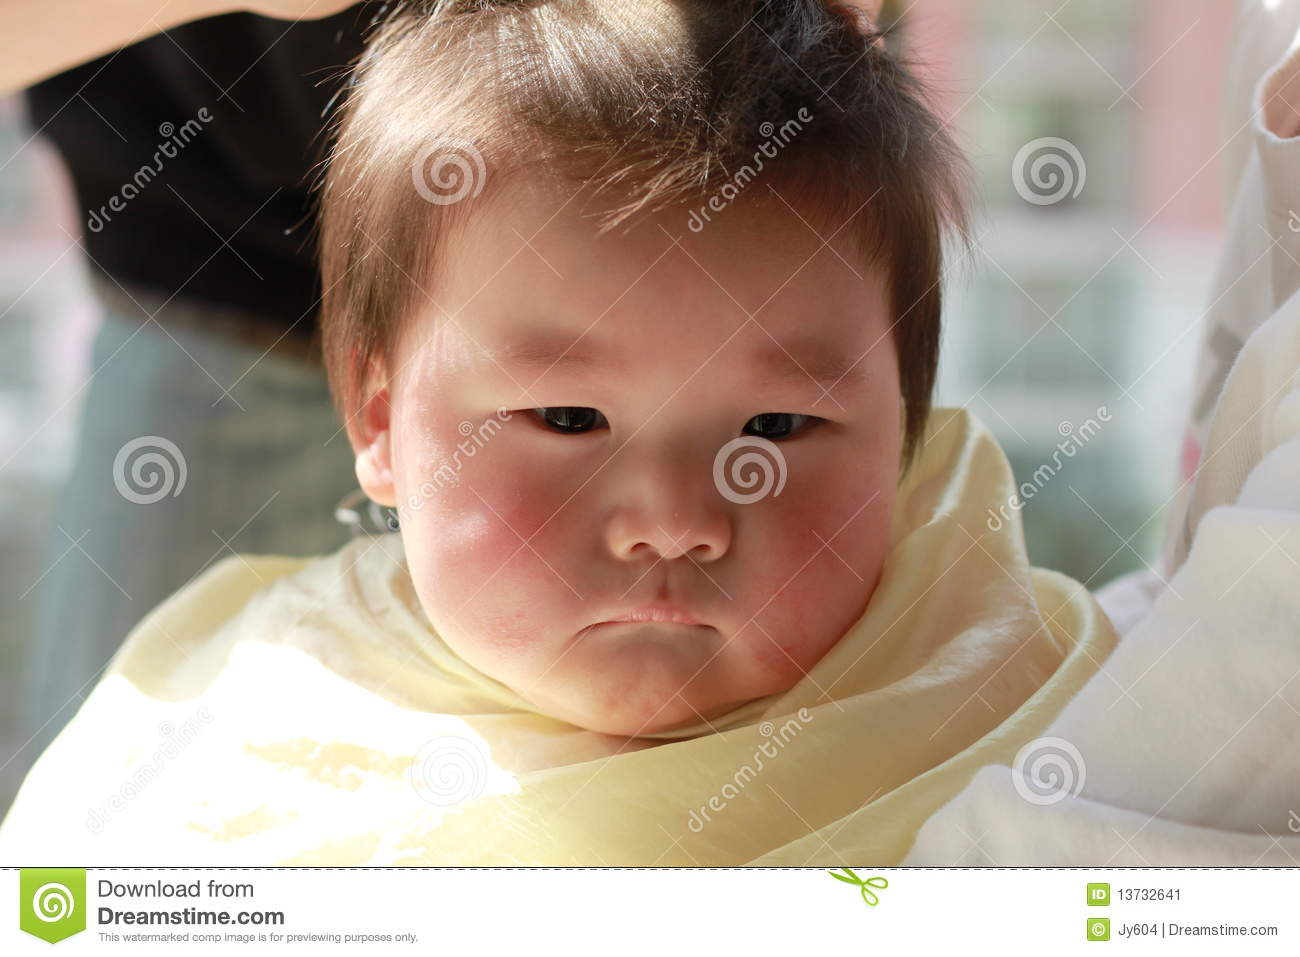 Baby Haircut Stock Image Image Of Infant Expression 13732641